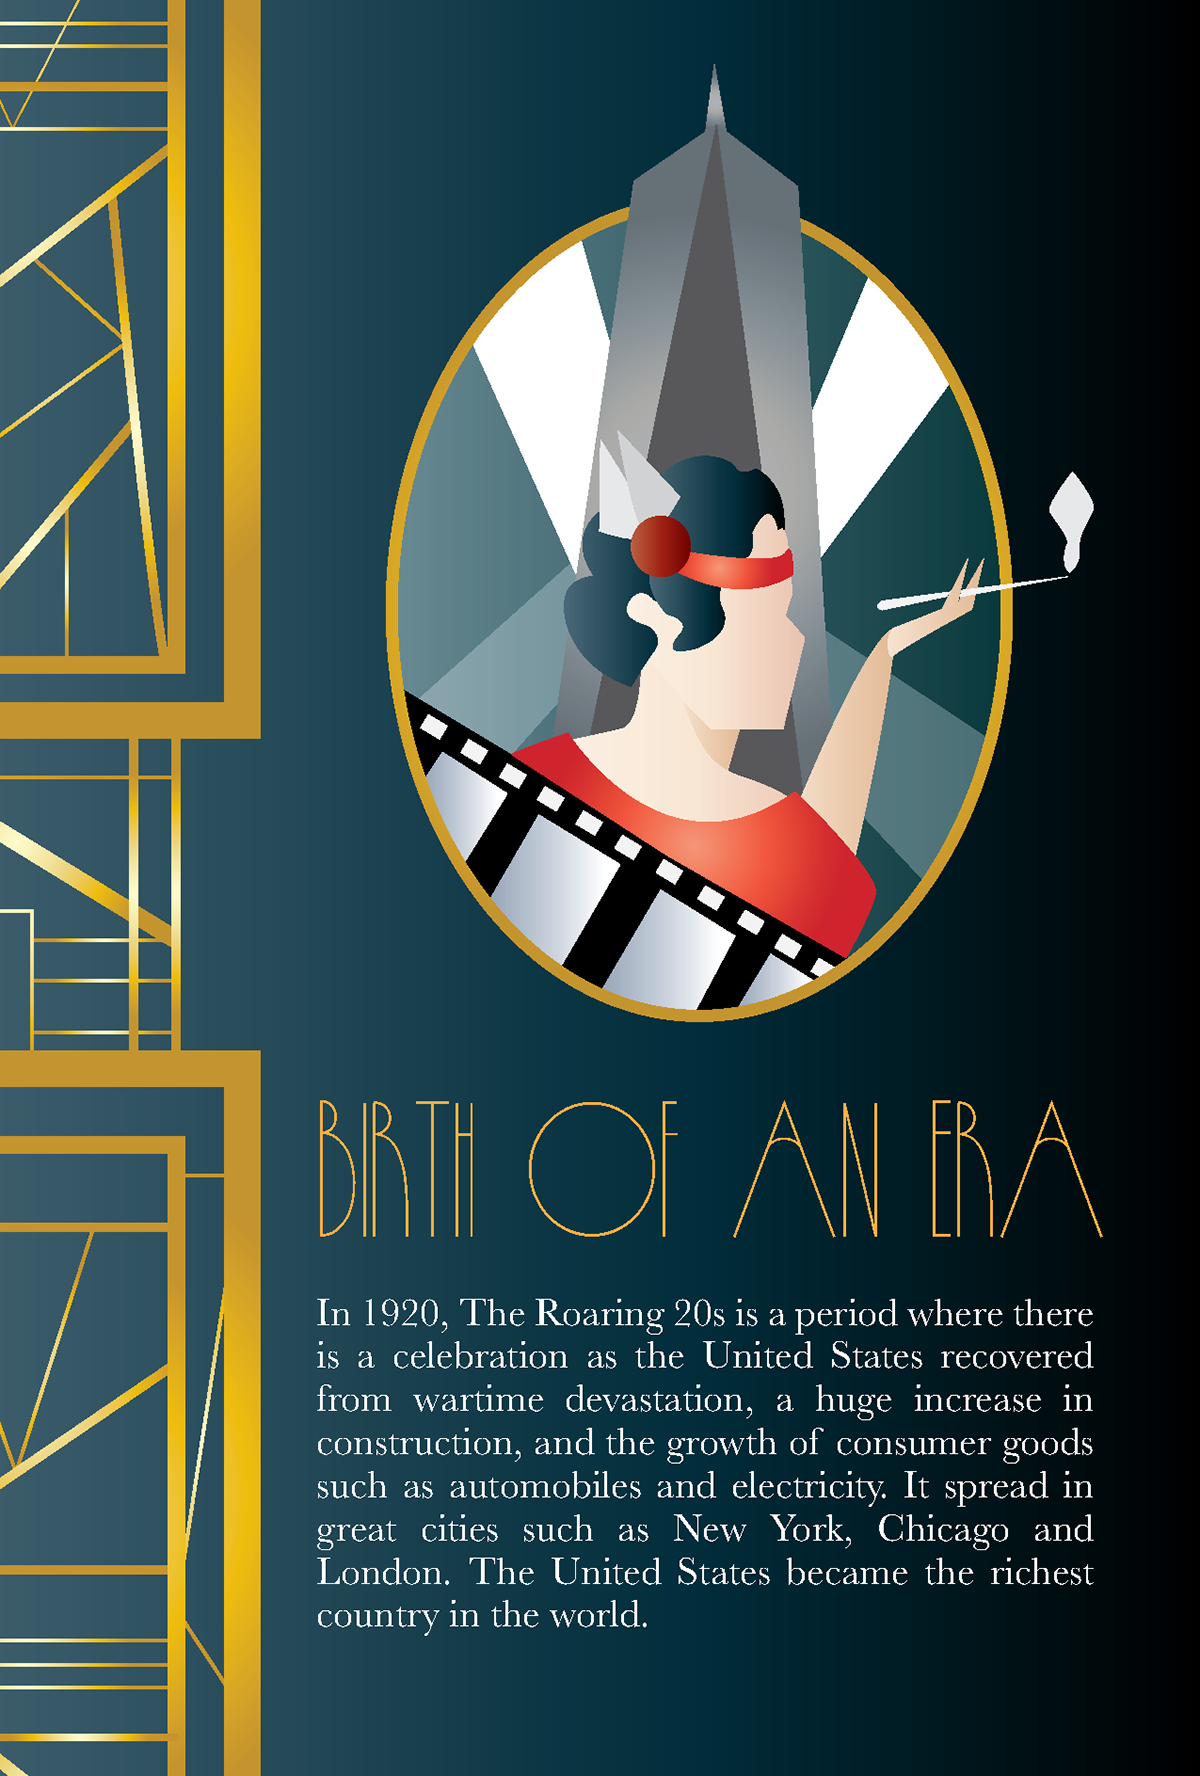 Roaring 20s (Birth To Death Invitations Project) on Behance